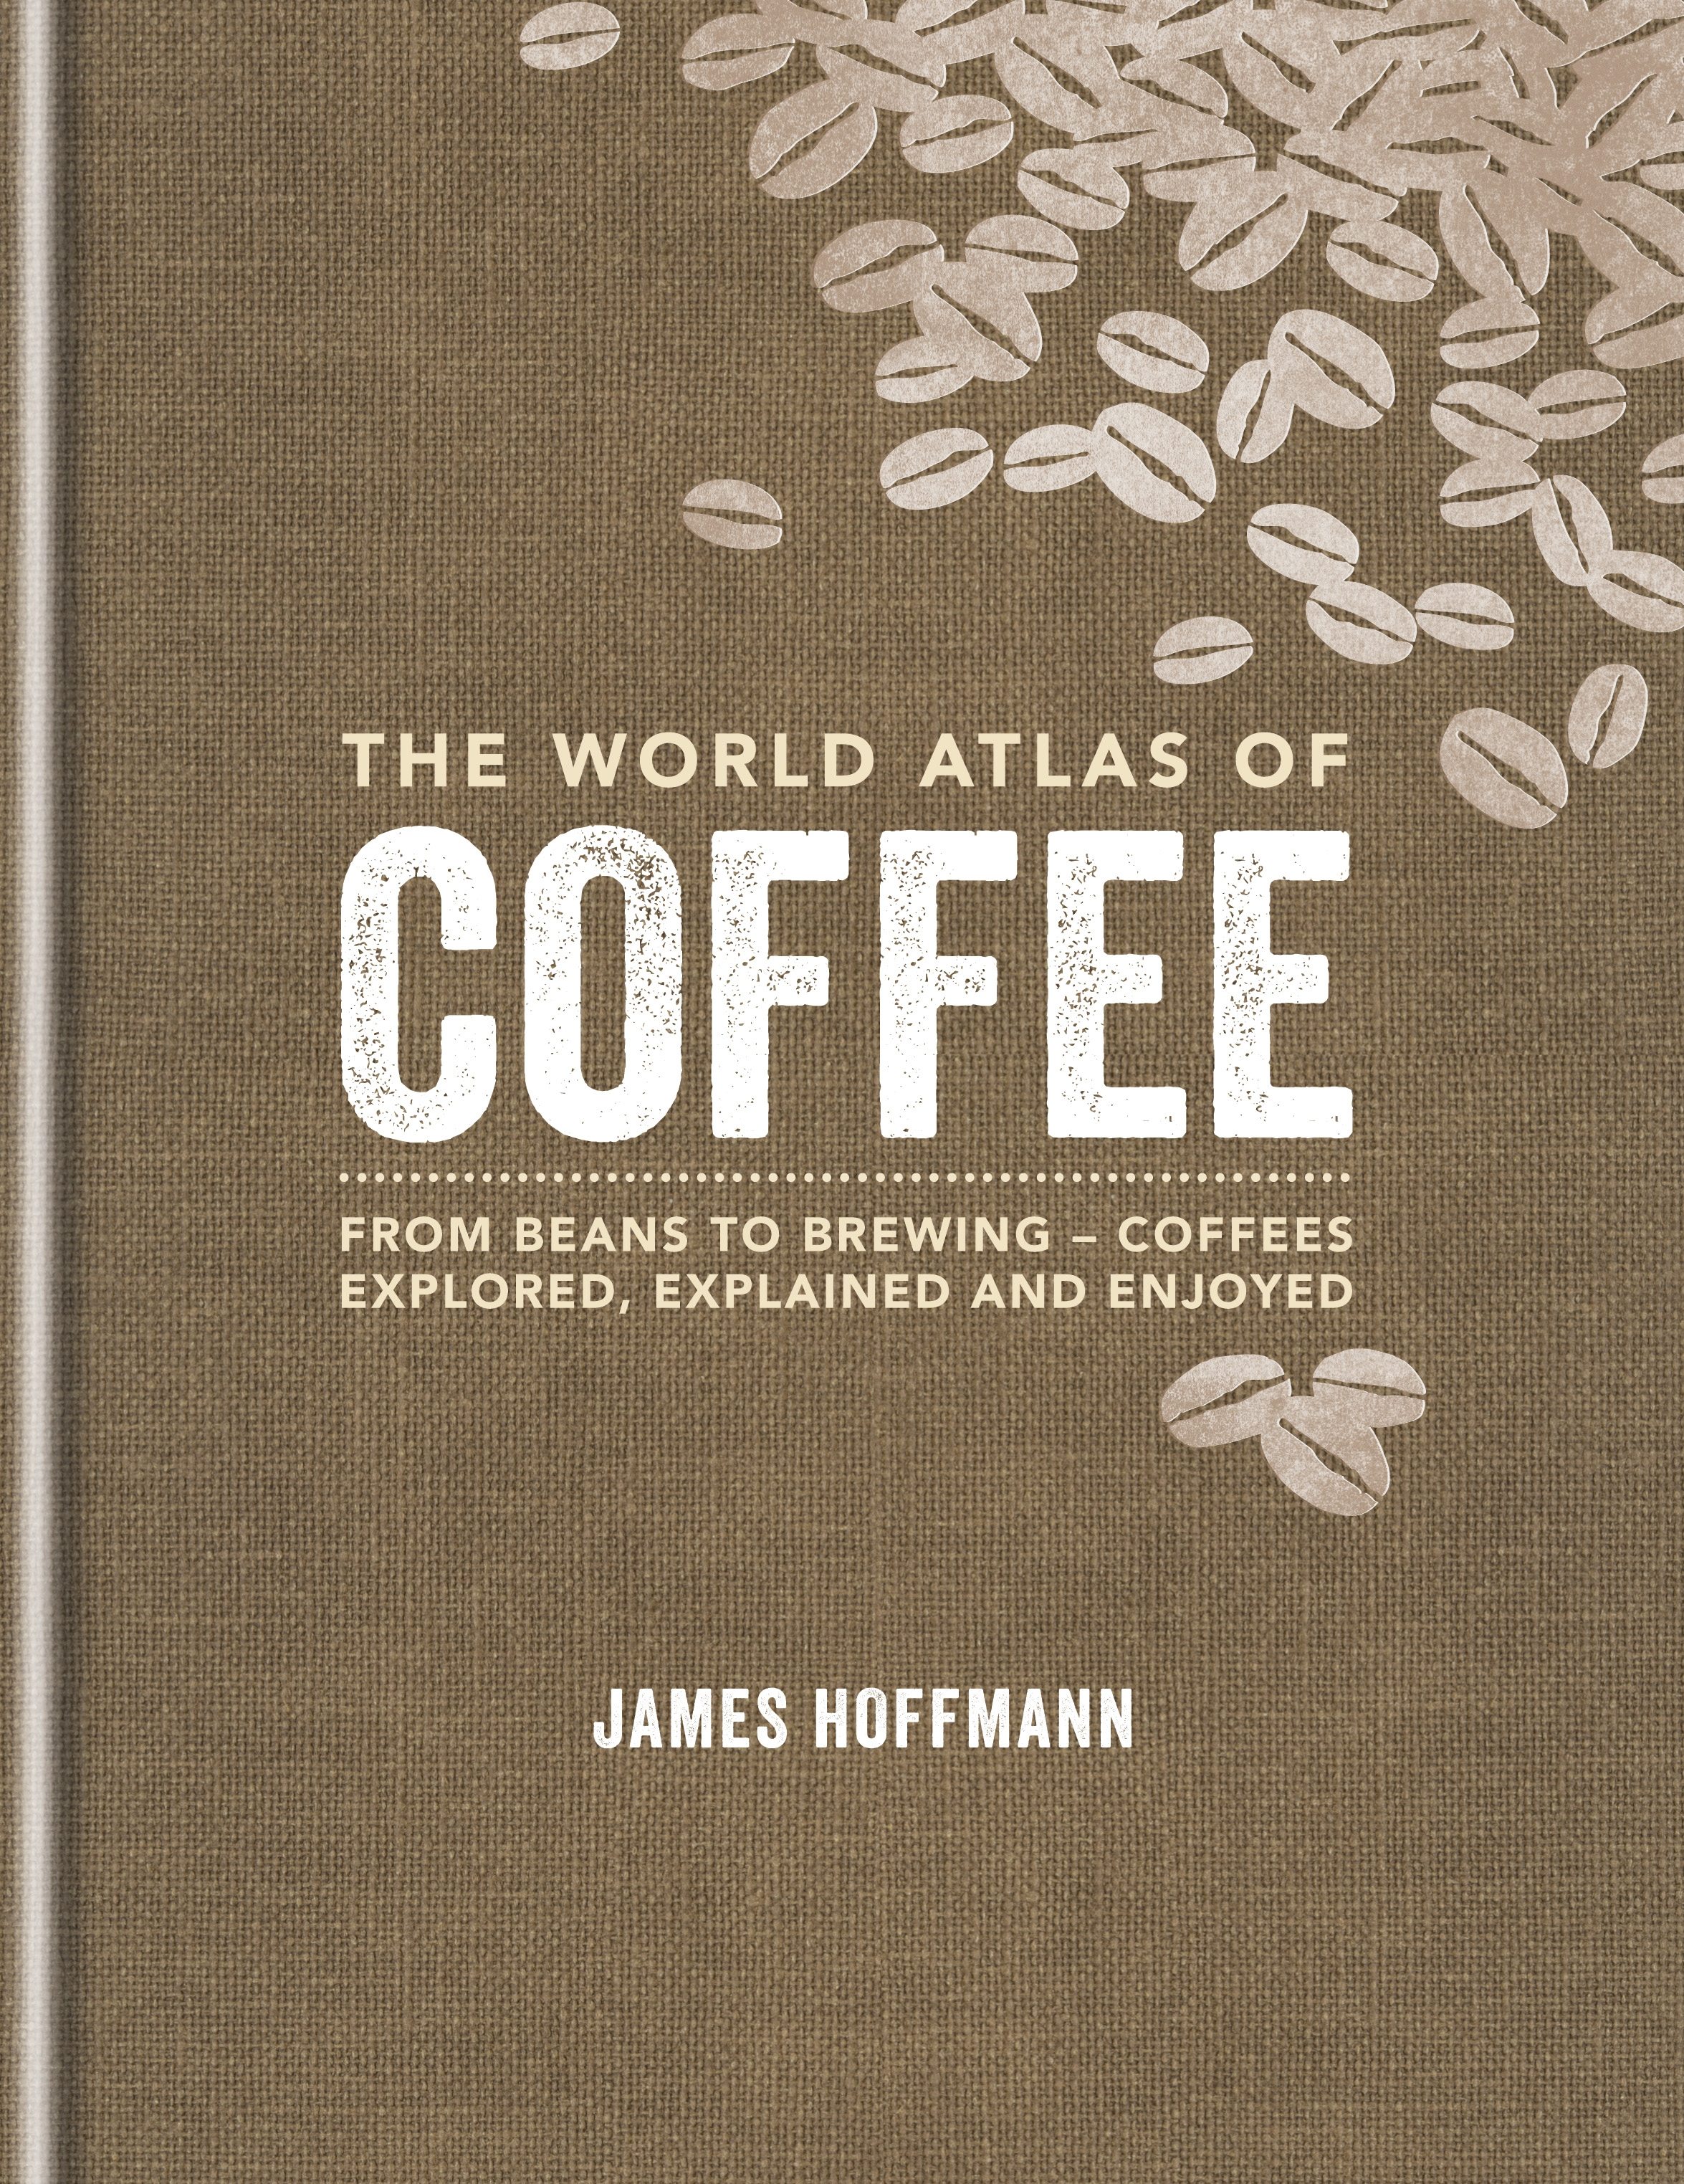 The World Atlas of Coffee: From beans to brewing - coffees explored, explained and enjoyed by James Hoffmann, ISBN: 9781845337872